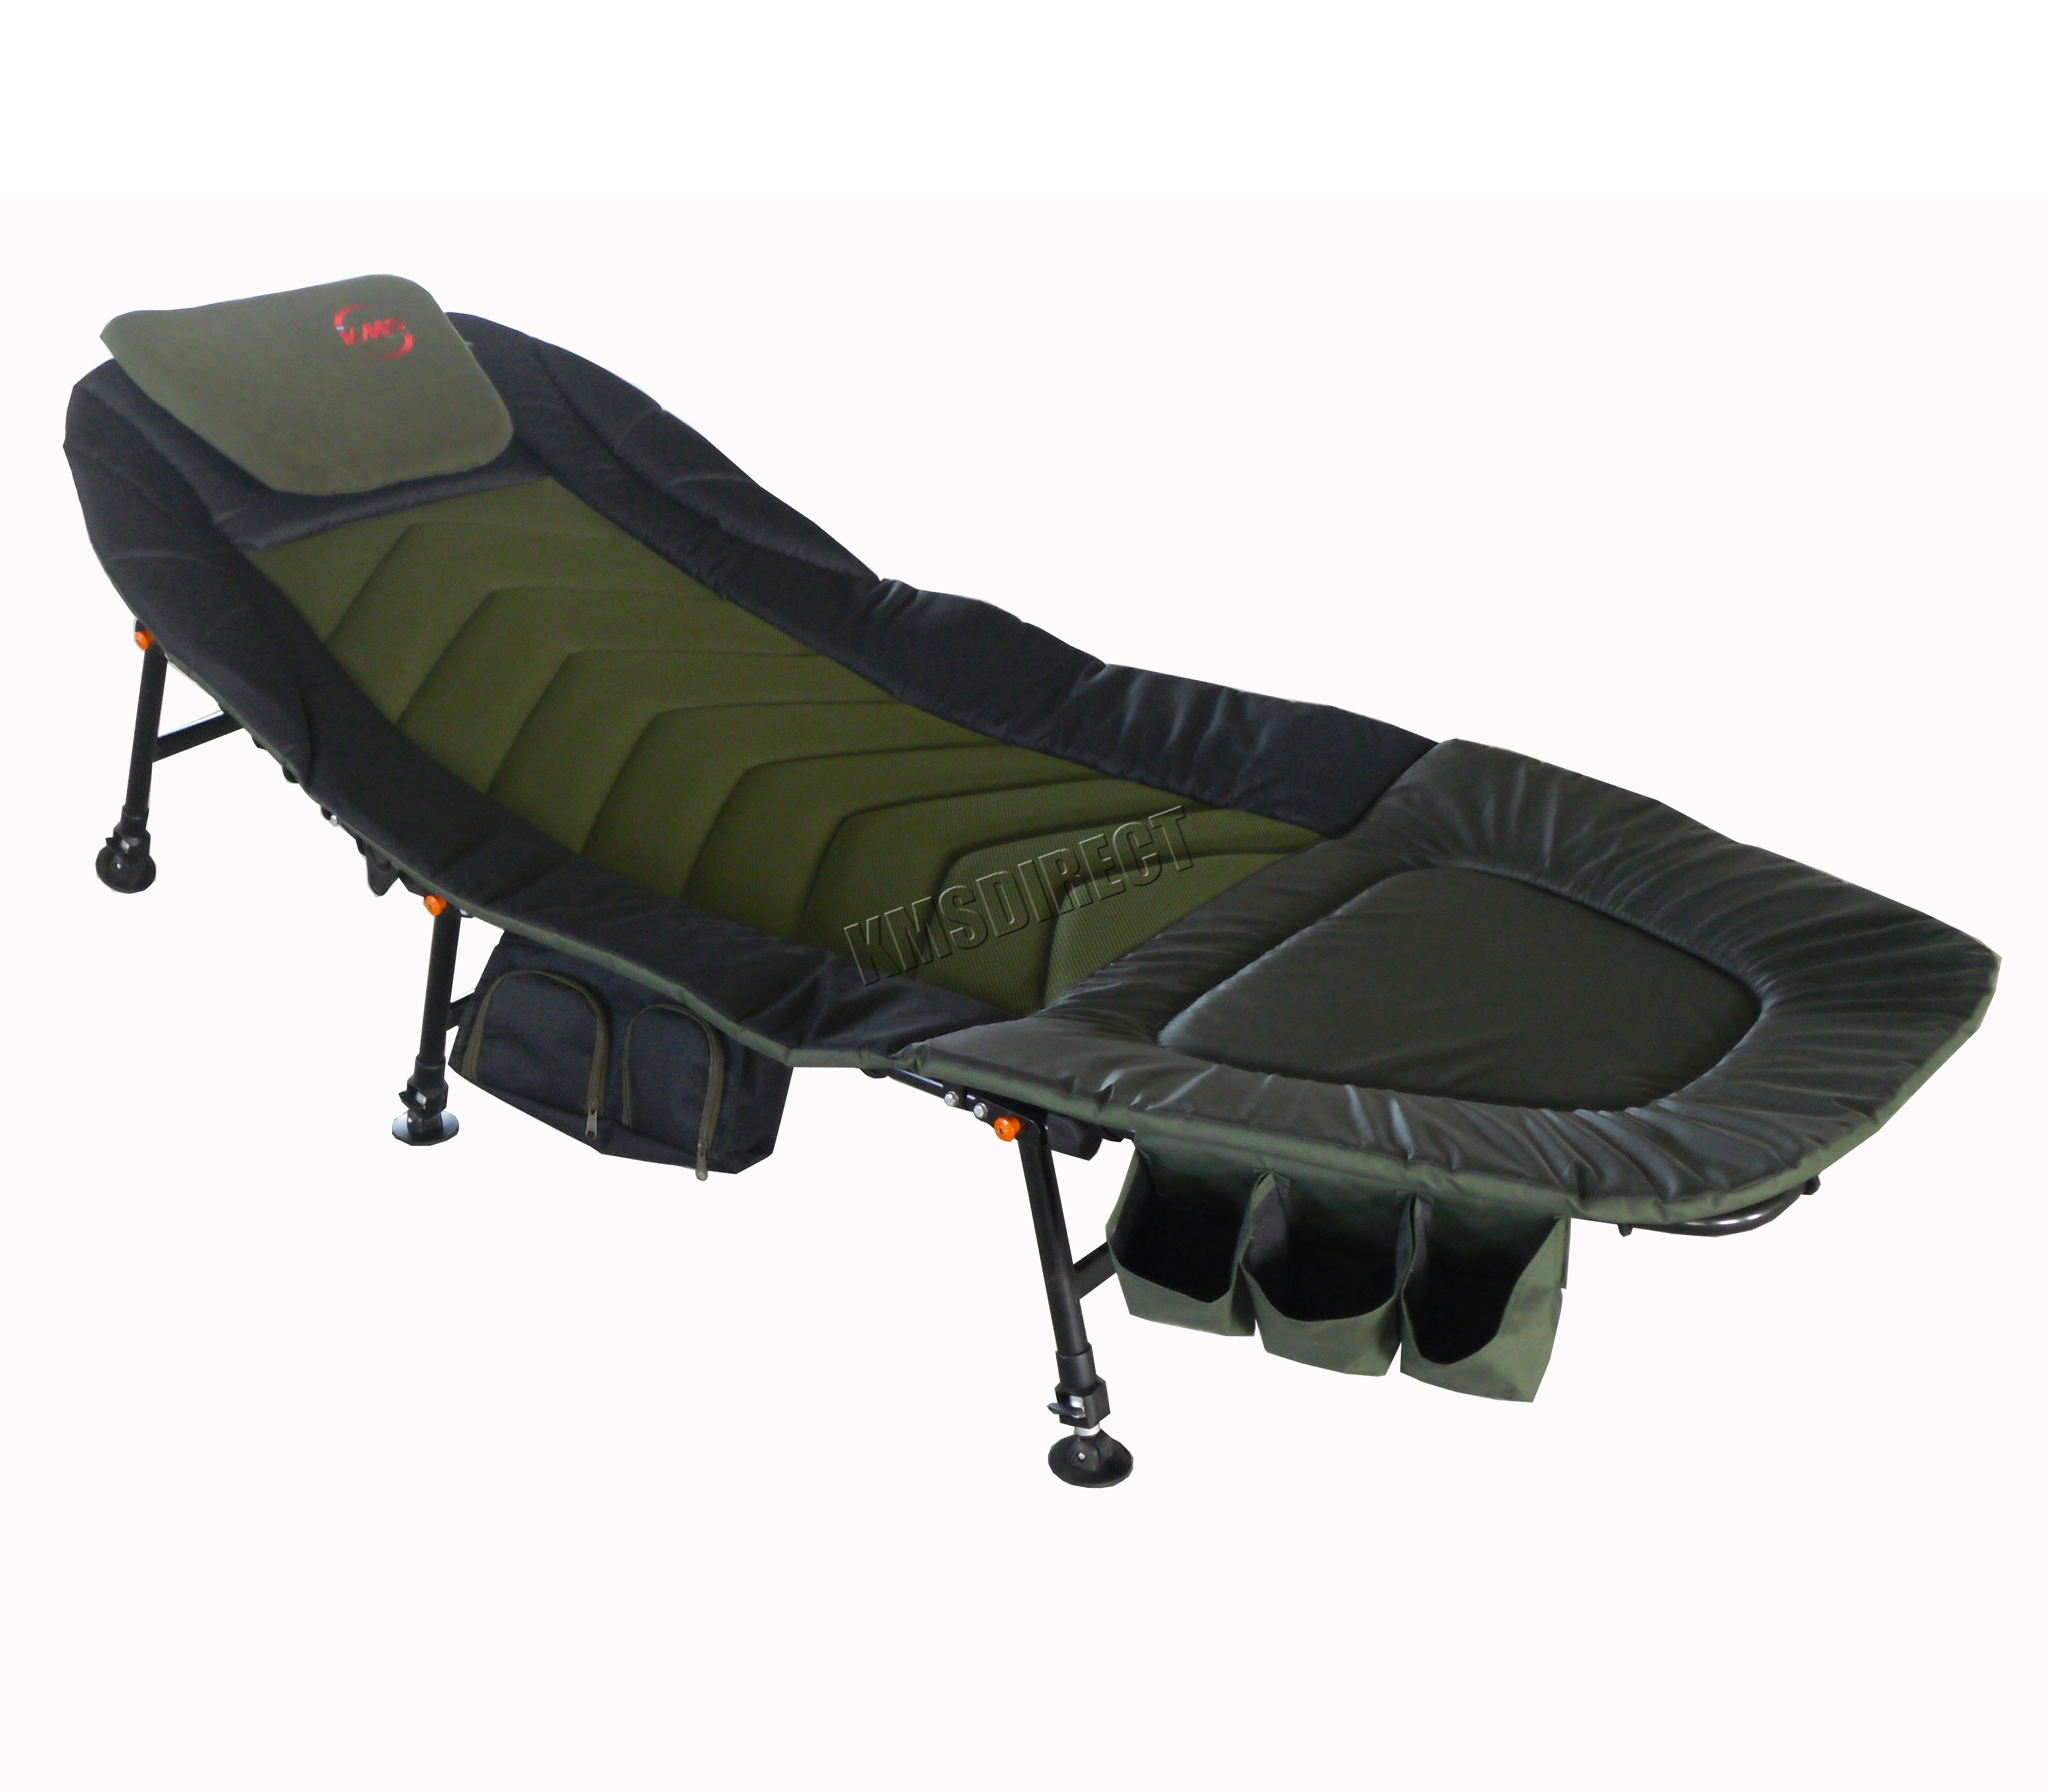 fishing chair with adjustable legs cover hire inverclyde carp bed bedchair camping 6 tool bag pillow fb-008 | ebay